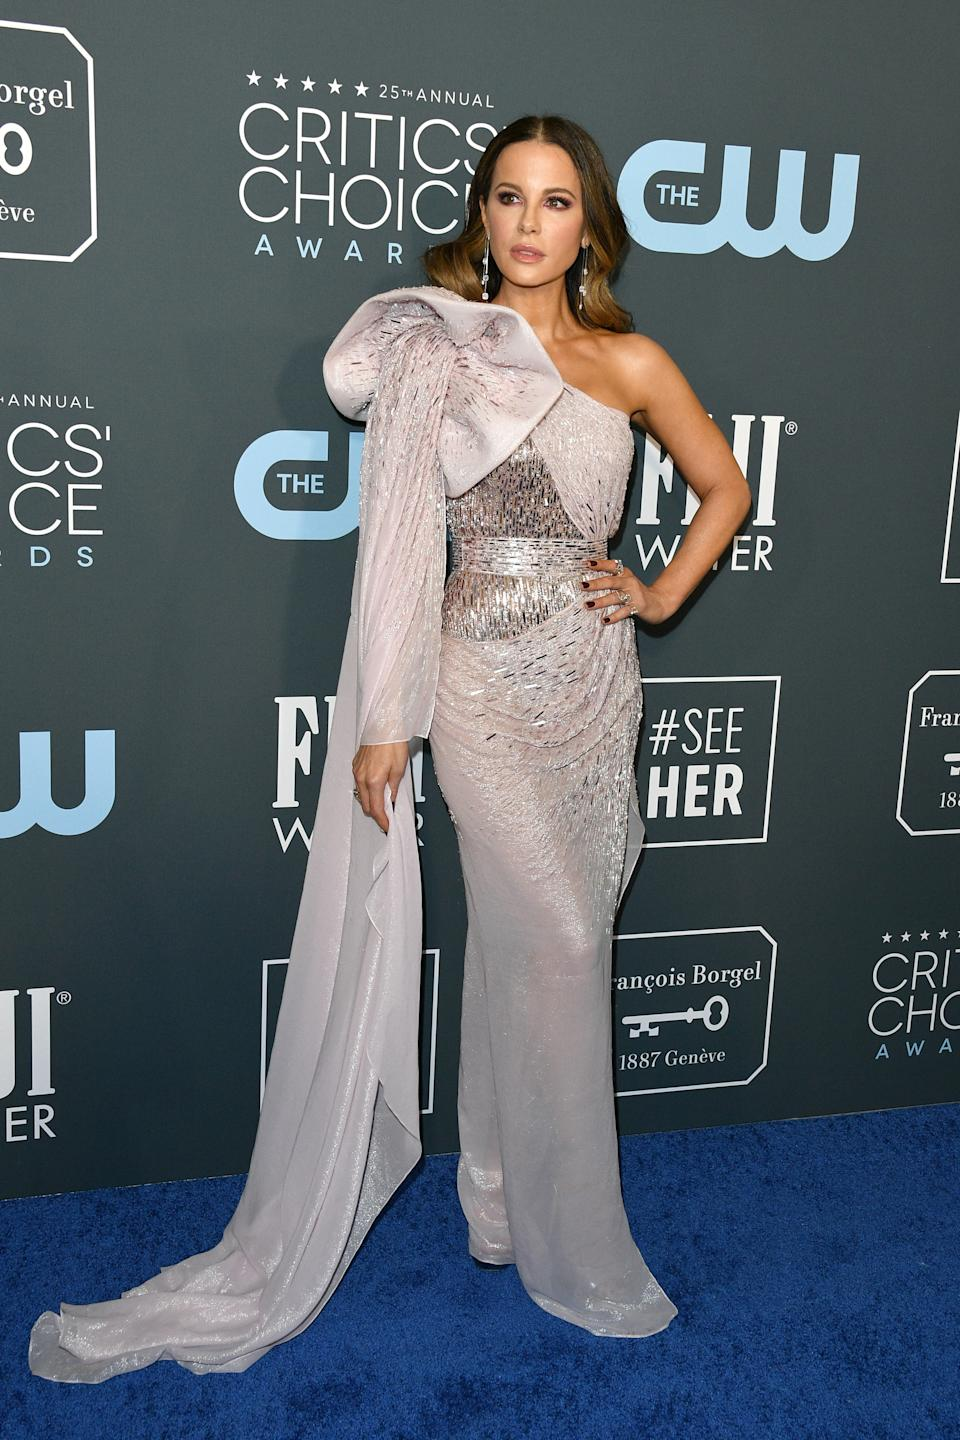 Kate Beckinsale attends the 25th Annual Critics' Choice Awards held at Barker Hangar on January 12, 2020 in Santa Monica, California.